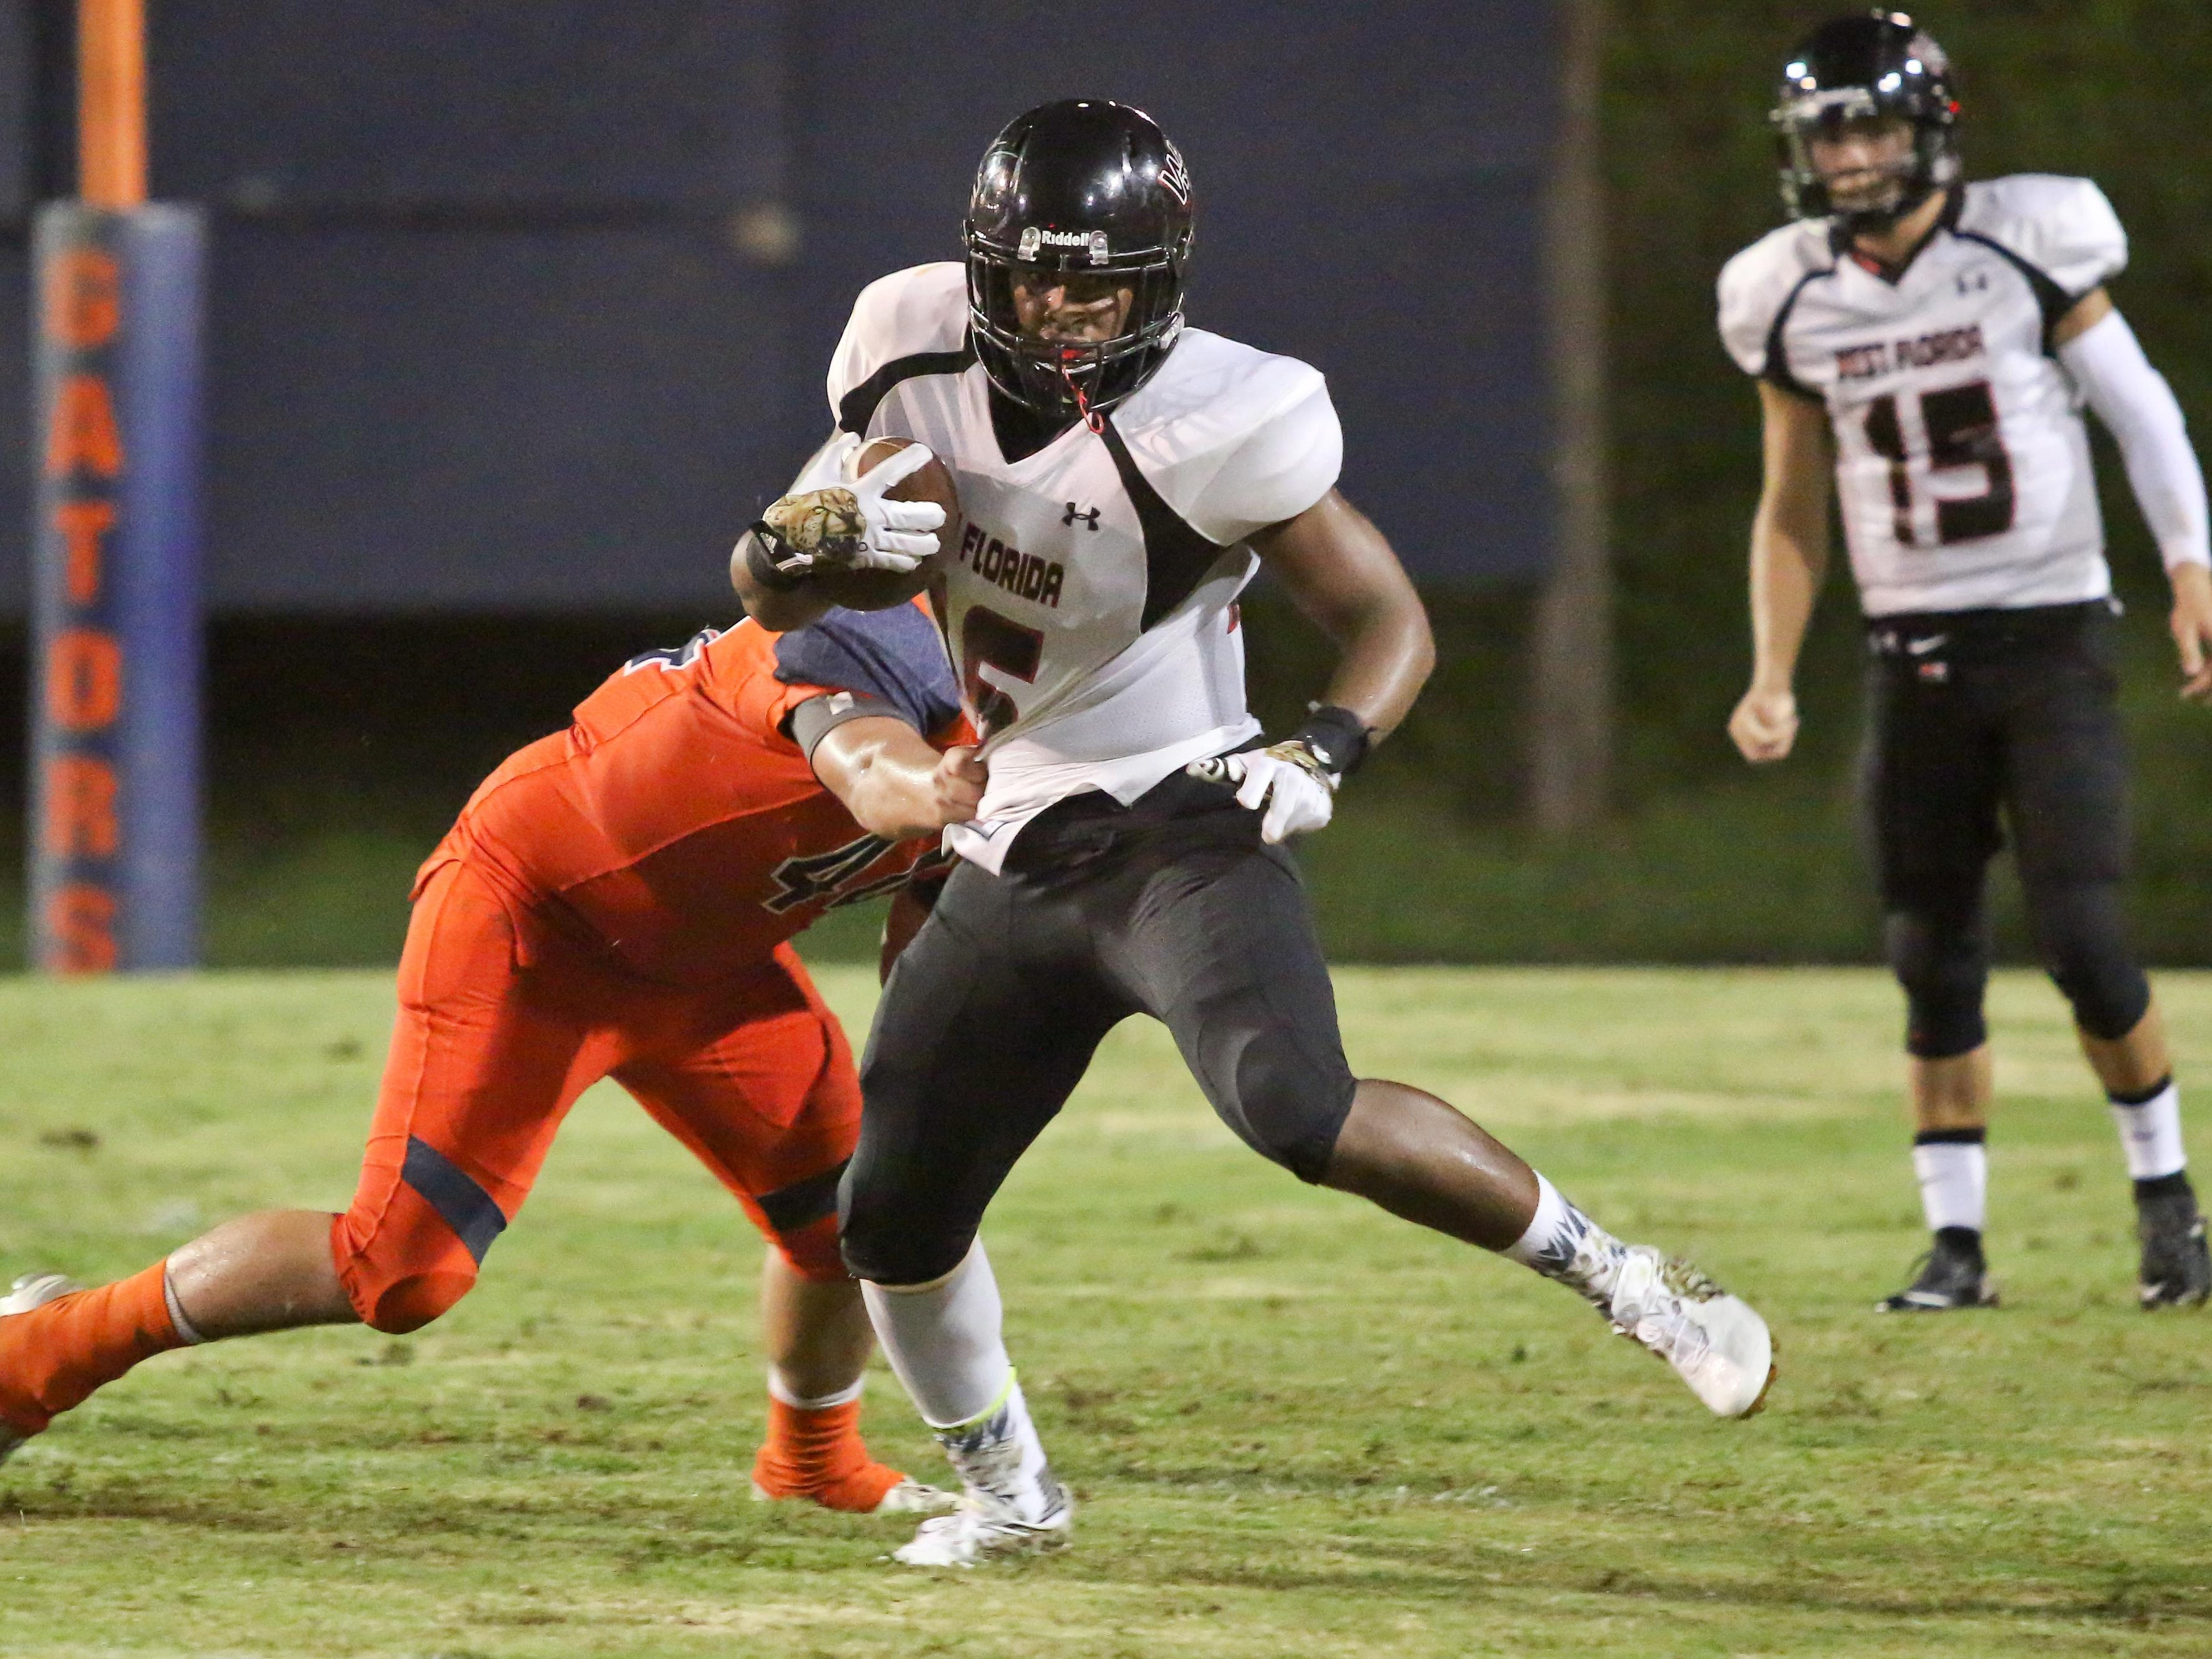 West Florida's Devin Abrams (16) works to get out of the grip of Escambia's Noah Lord (44) Thursday night at Escambia High School's Emmitt Smith Field.